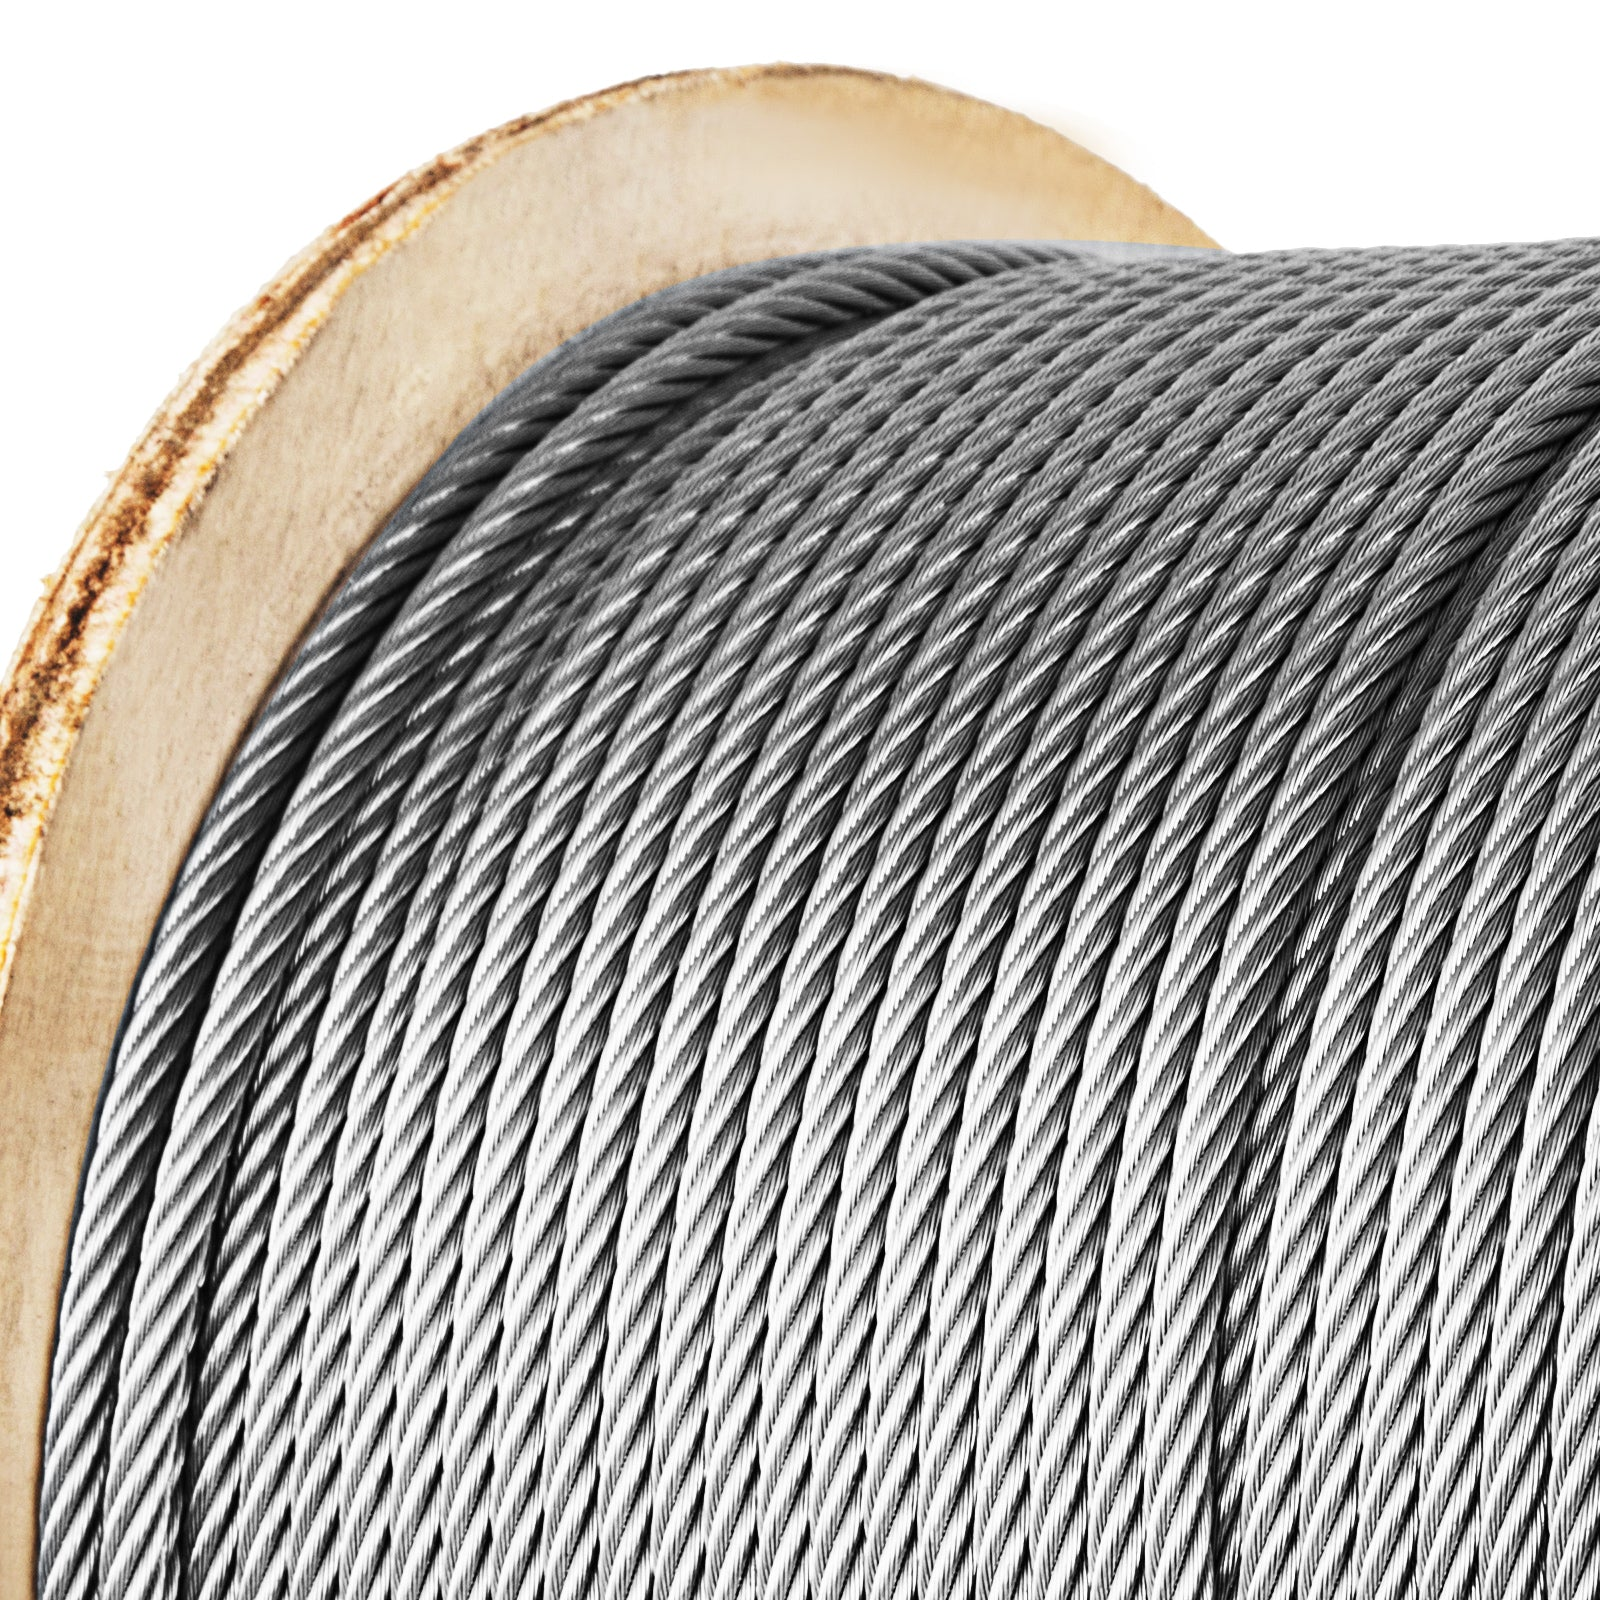 "304 Grade 7 X 19 Stainless Steel Cable Wire Rope 1/4""- 500 Ft"